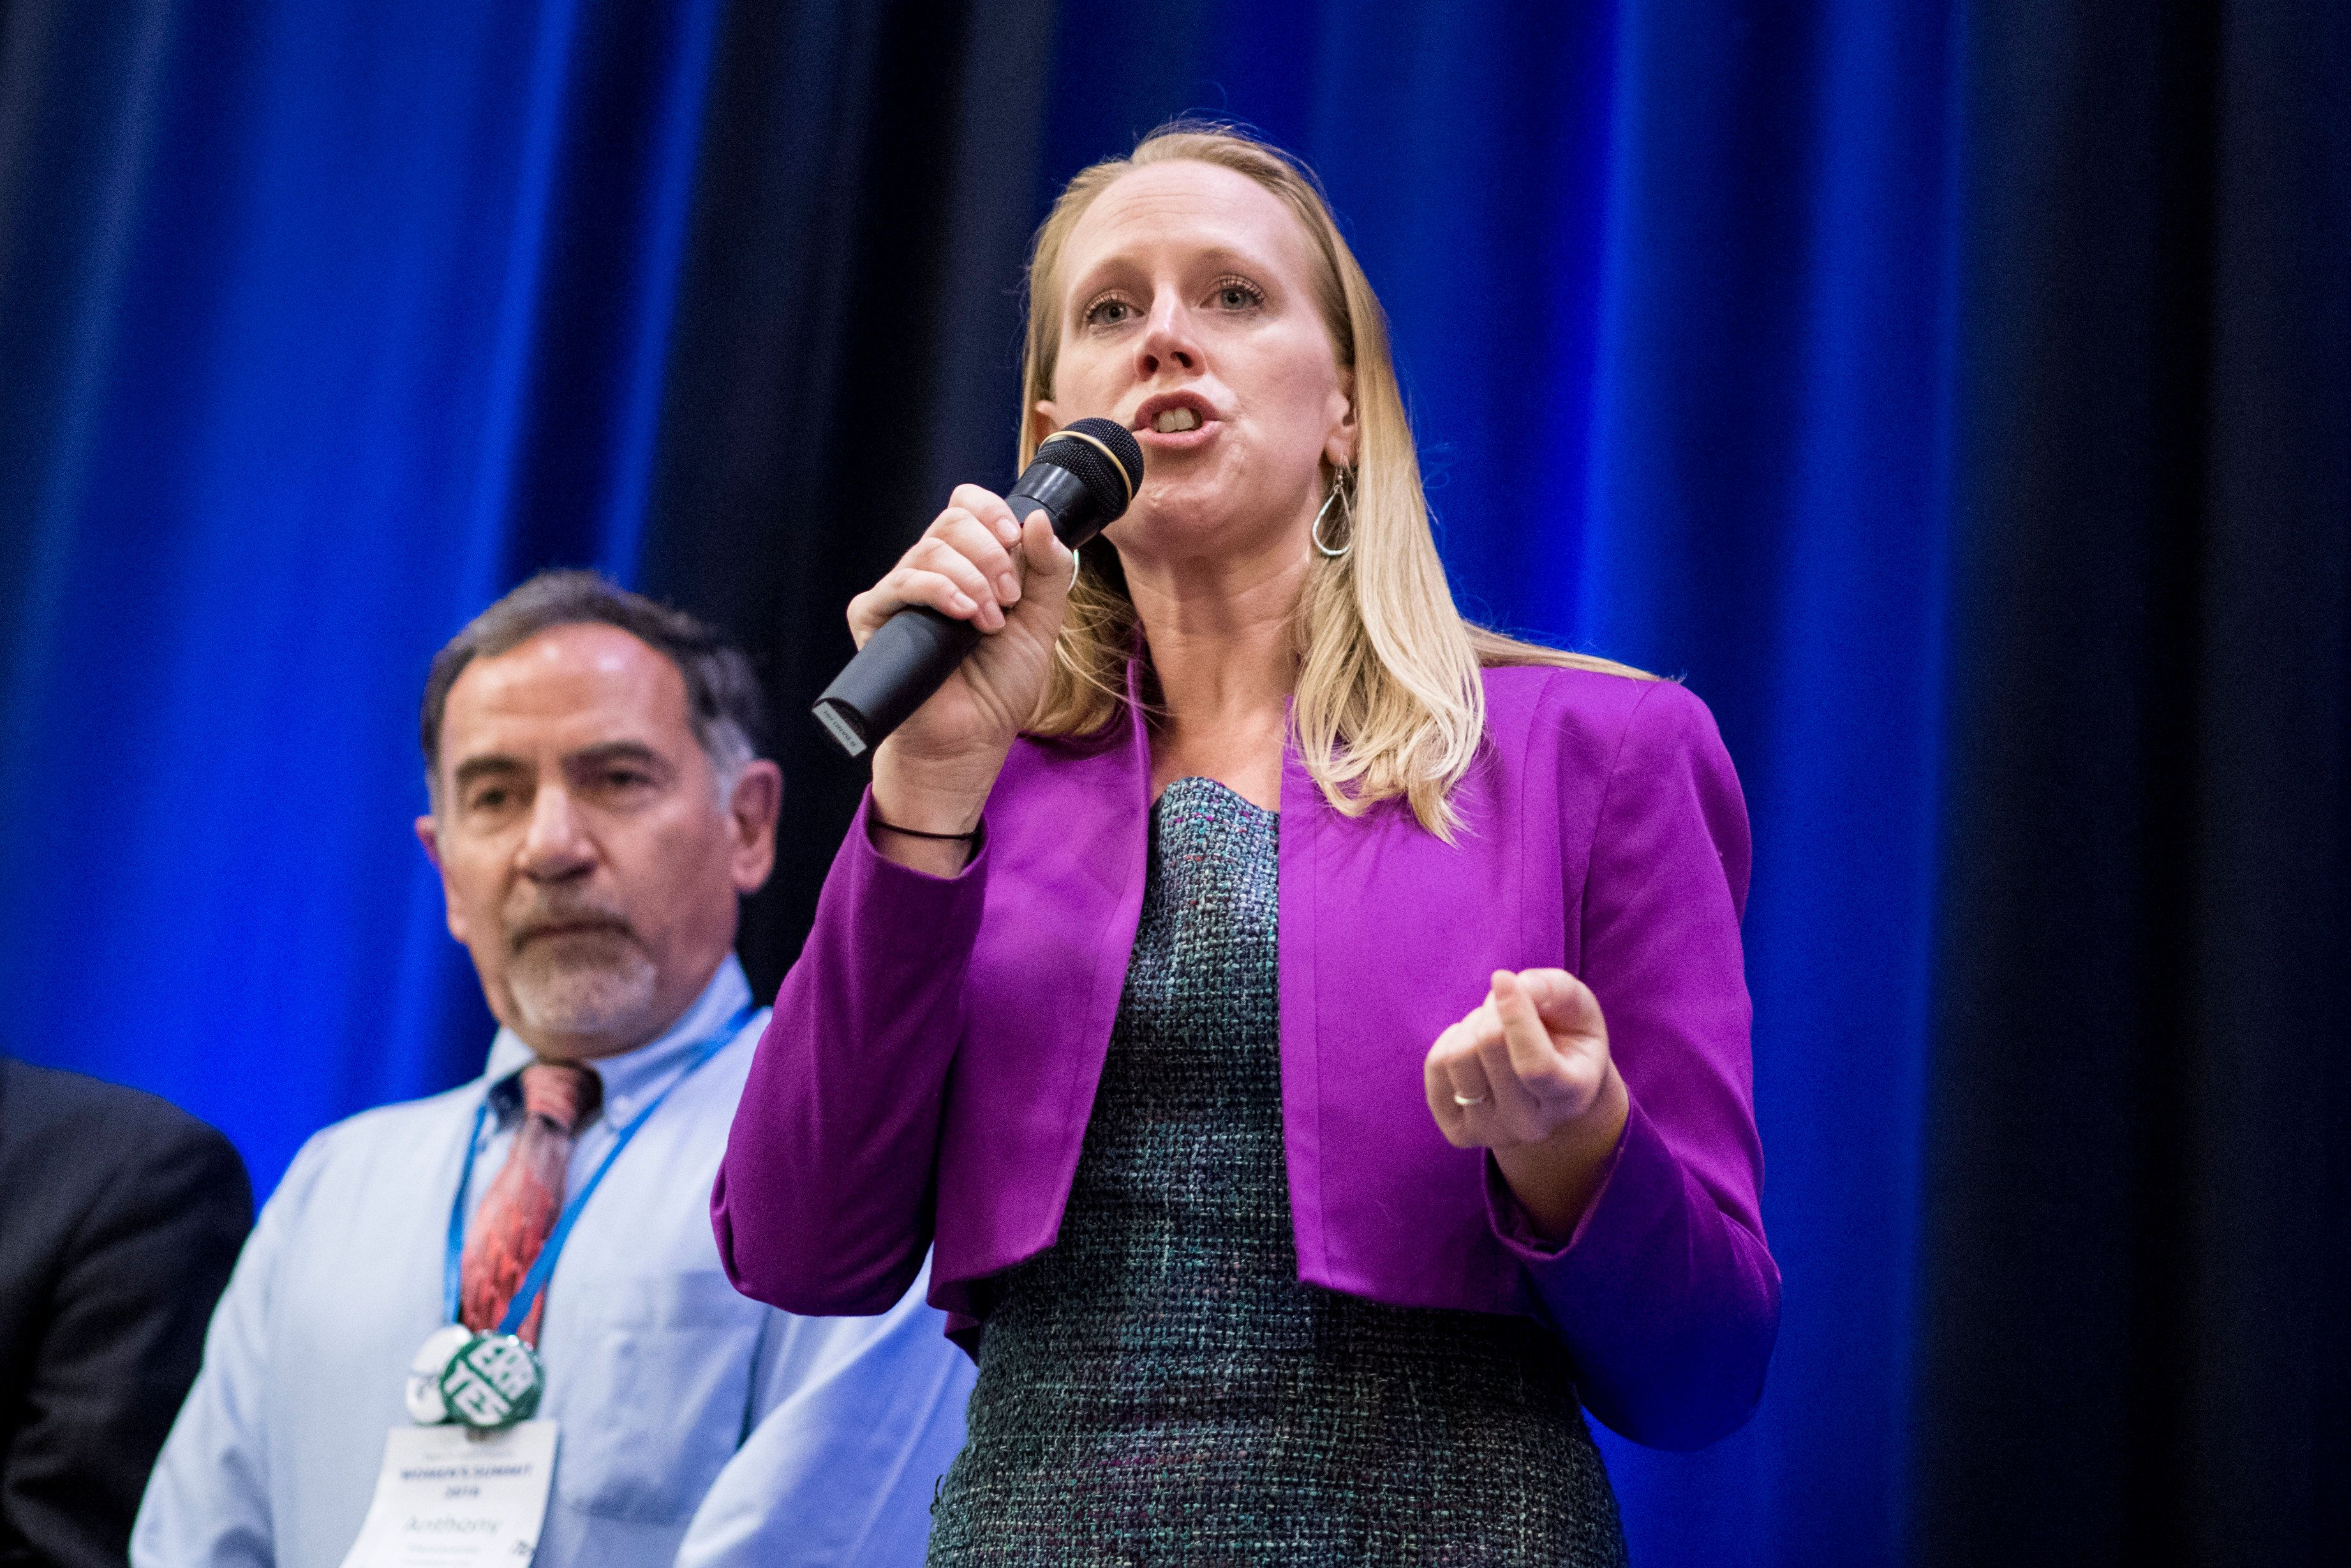 UNITED STATES - JUNE 23: Jennifer Lewis, Democratic candidate for the 6th congressional district of Virginia, speaks during the Women's Summit in Herndon, Va., on Saturday June 23, 2018. (Photo By Bill Clark/CQ Roll Call)